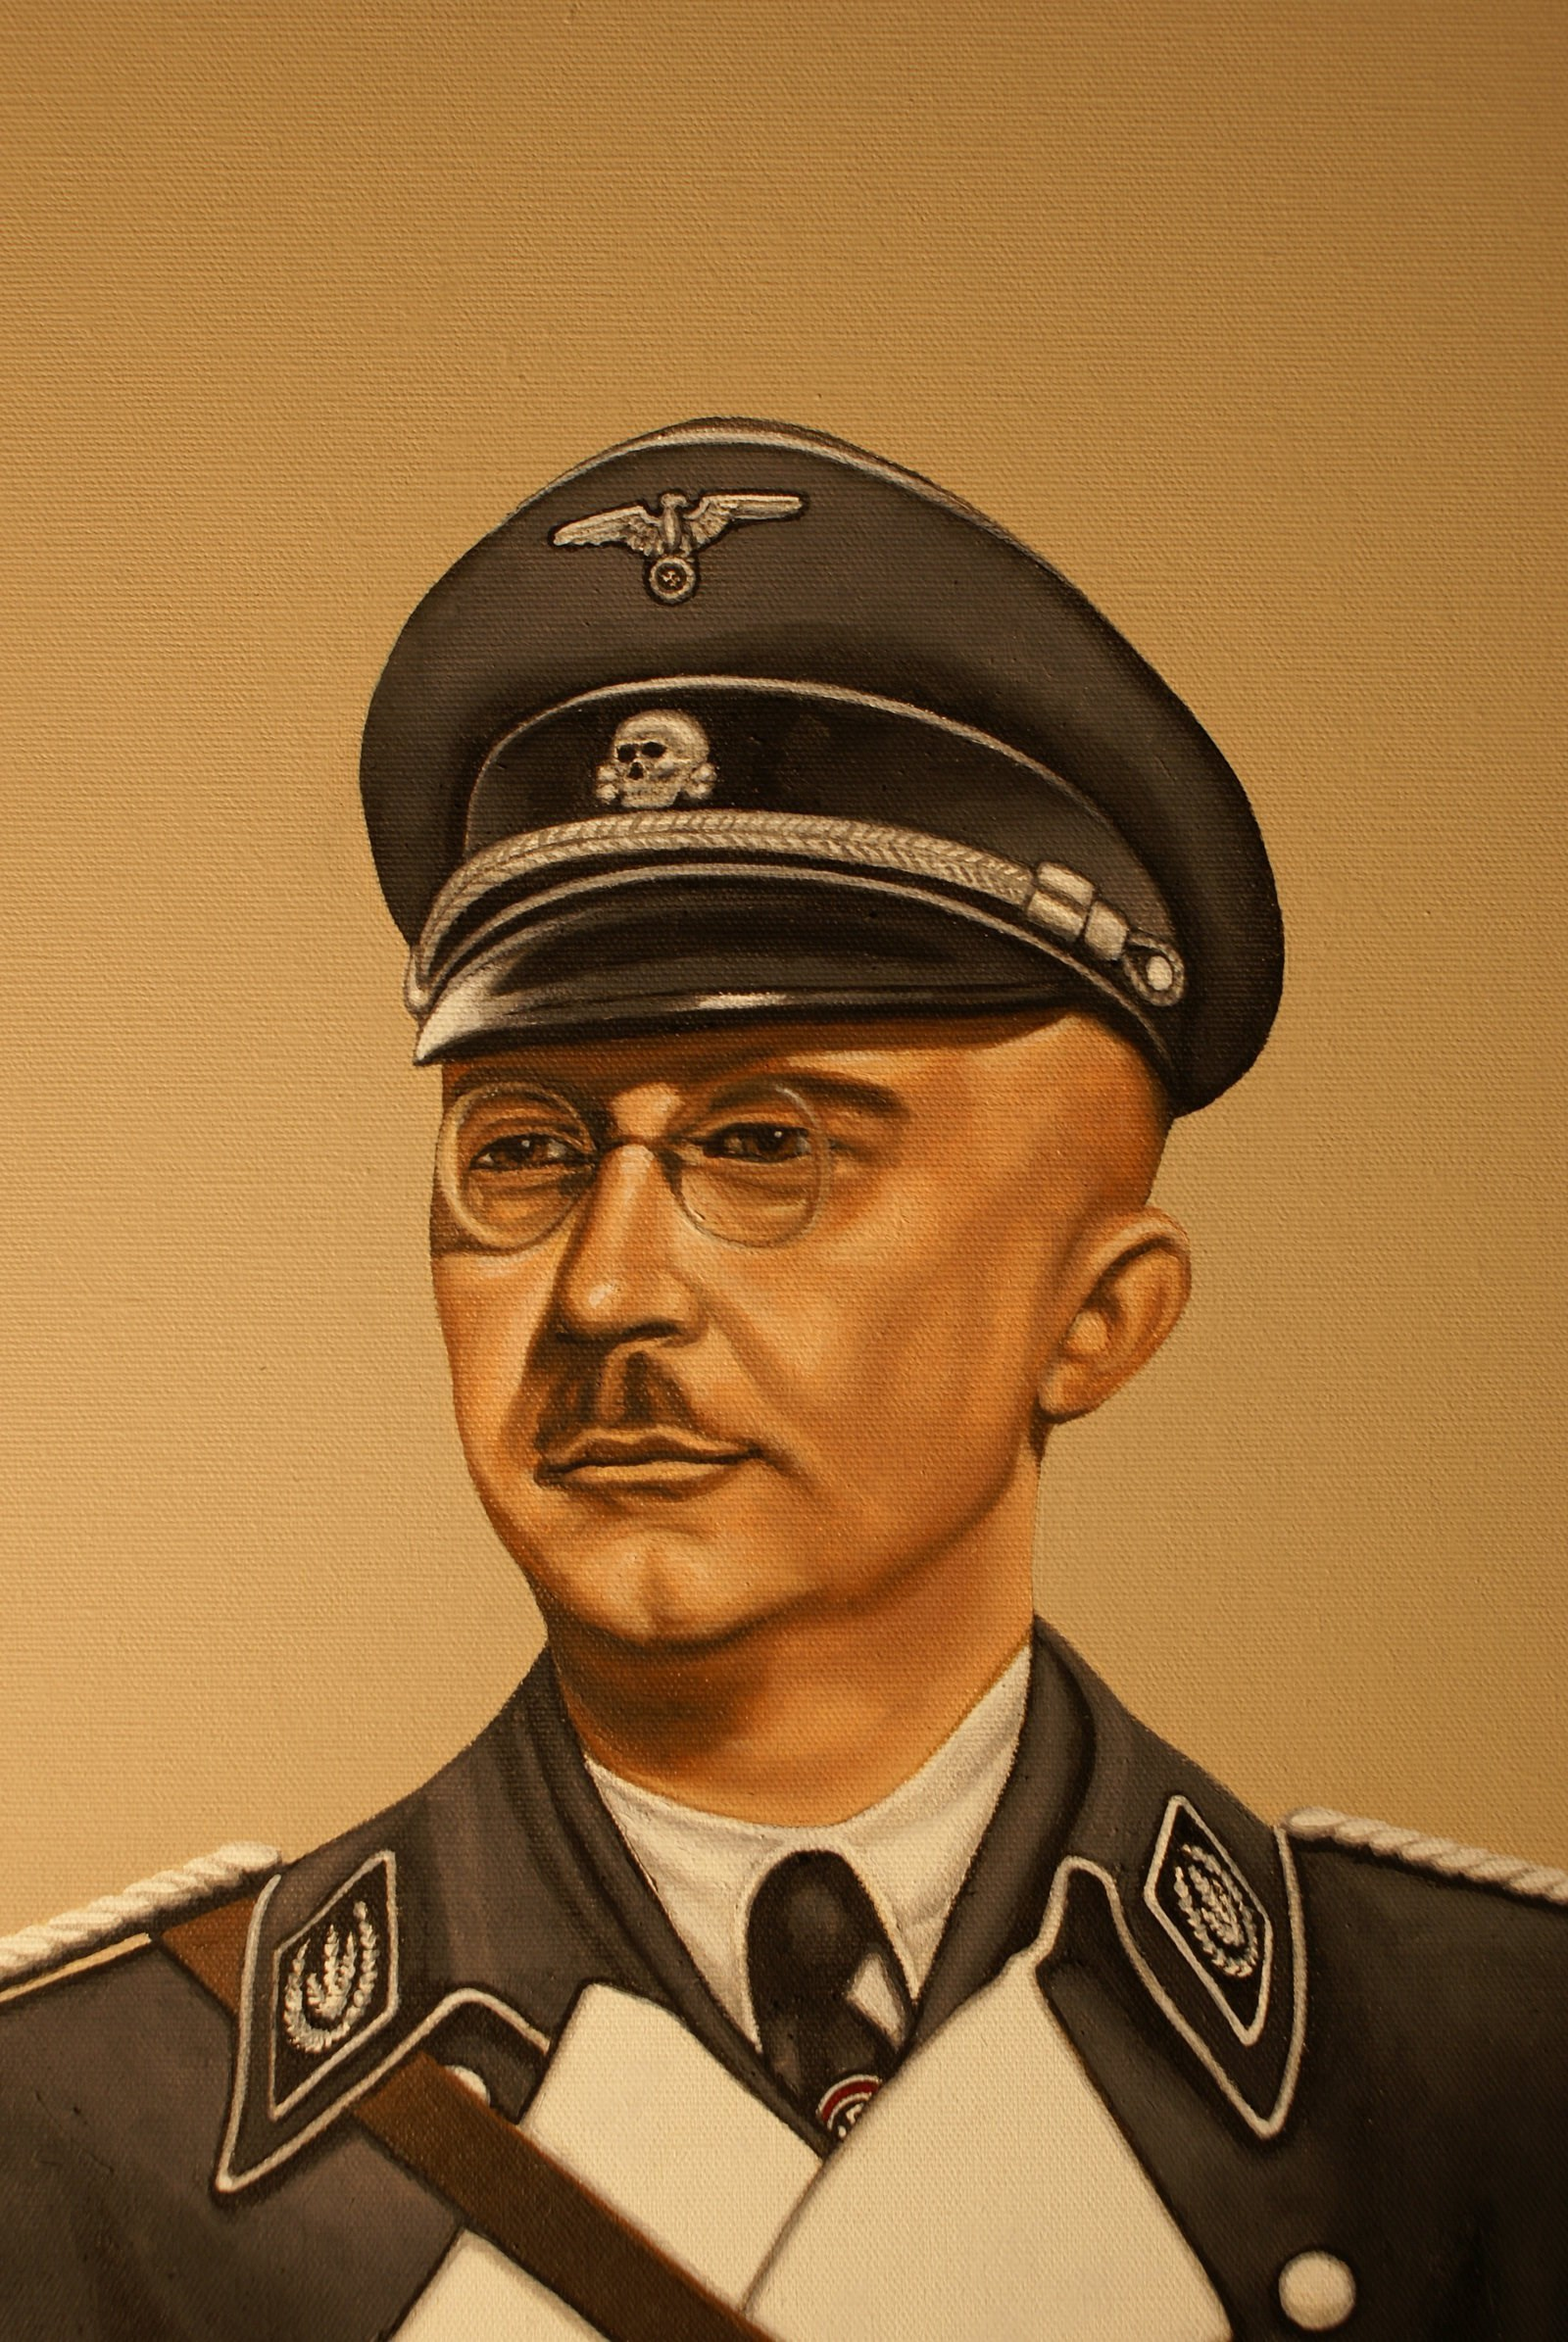 heinrich himler Heinrich himmler was reichsfuhrer-ss, head of the gestapo and the waffen-ss, nazi minister of the interior from 1943 to 1945 and organizer of the mass murder of jews in the third reich.